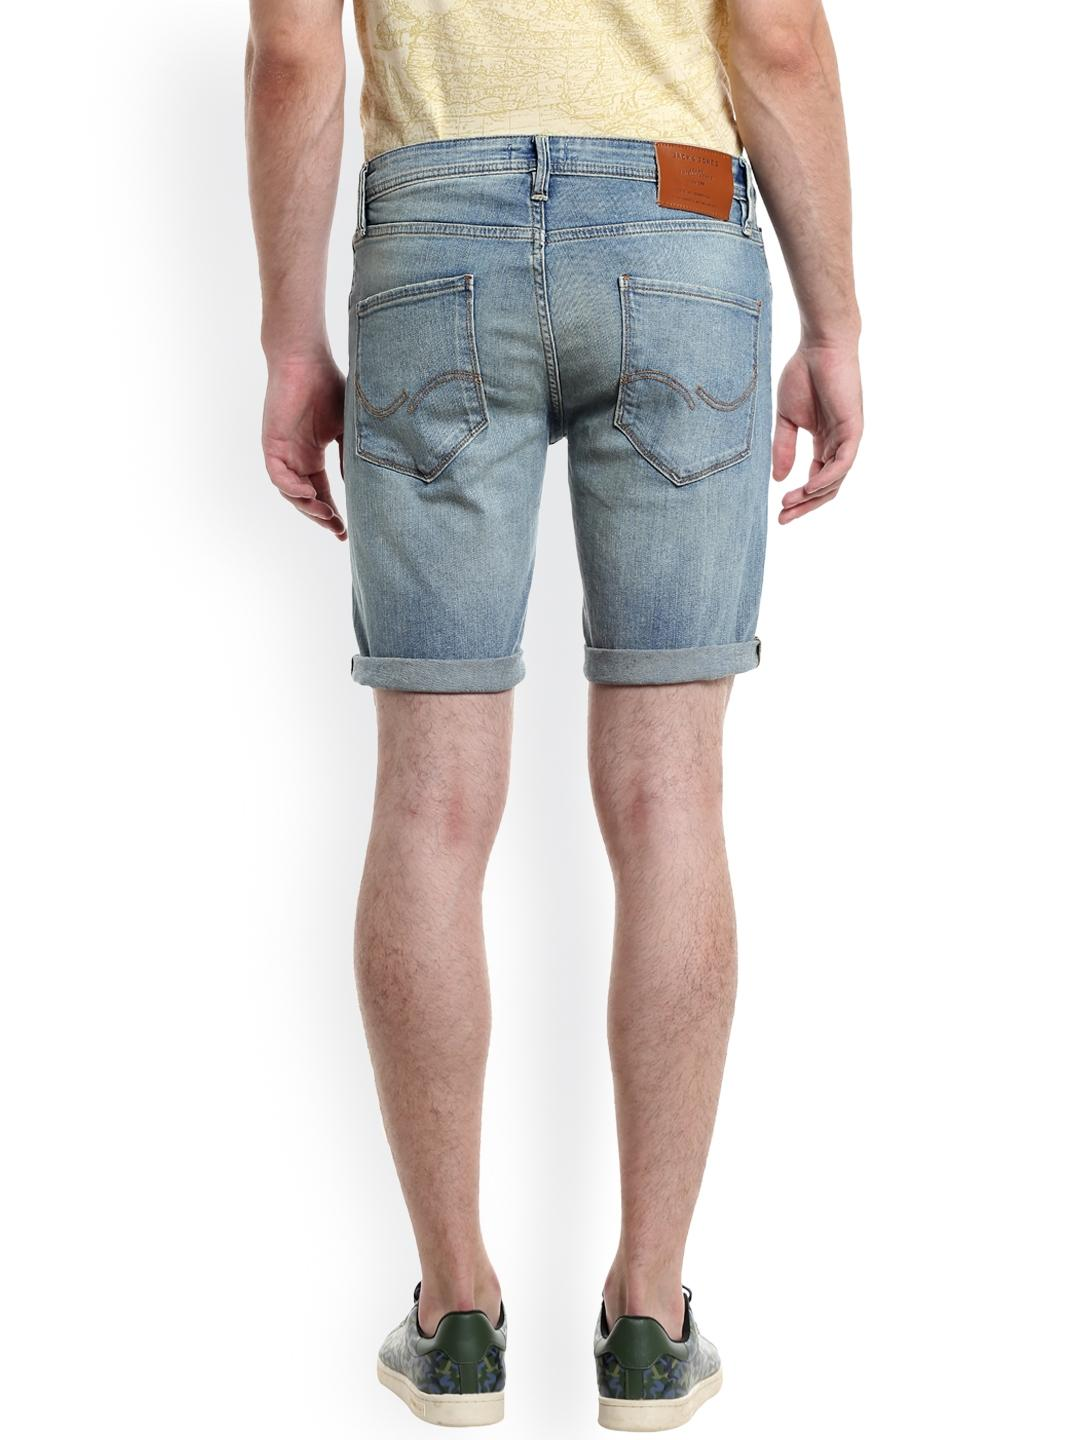 Light Blue Denim Shorts For Men